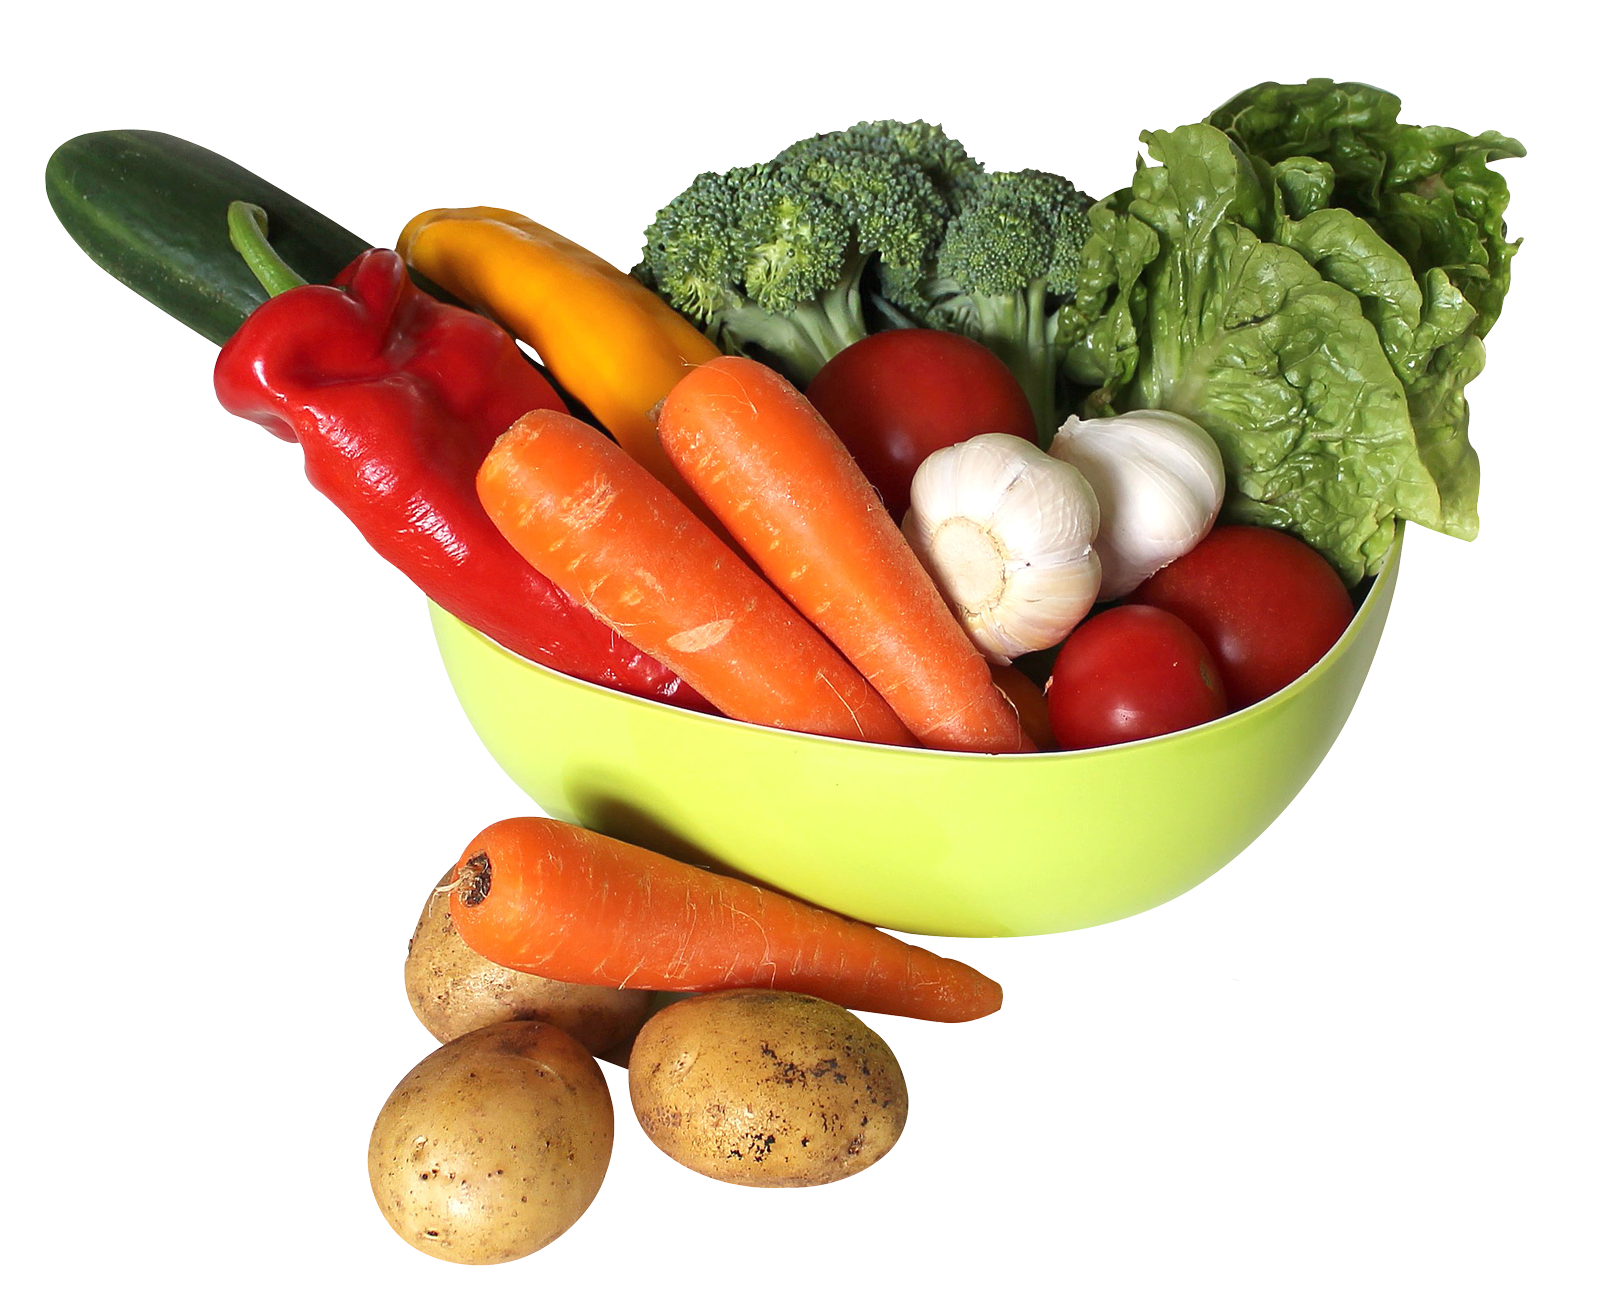 Vegetables PNG Image.